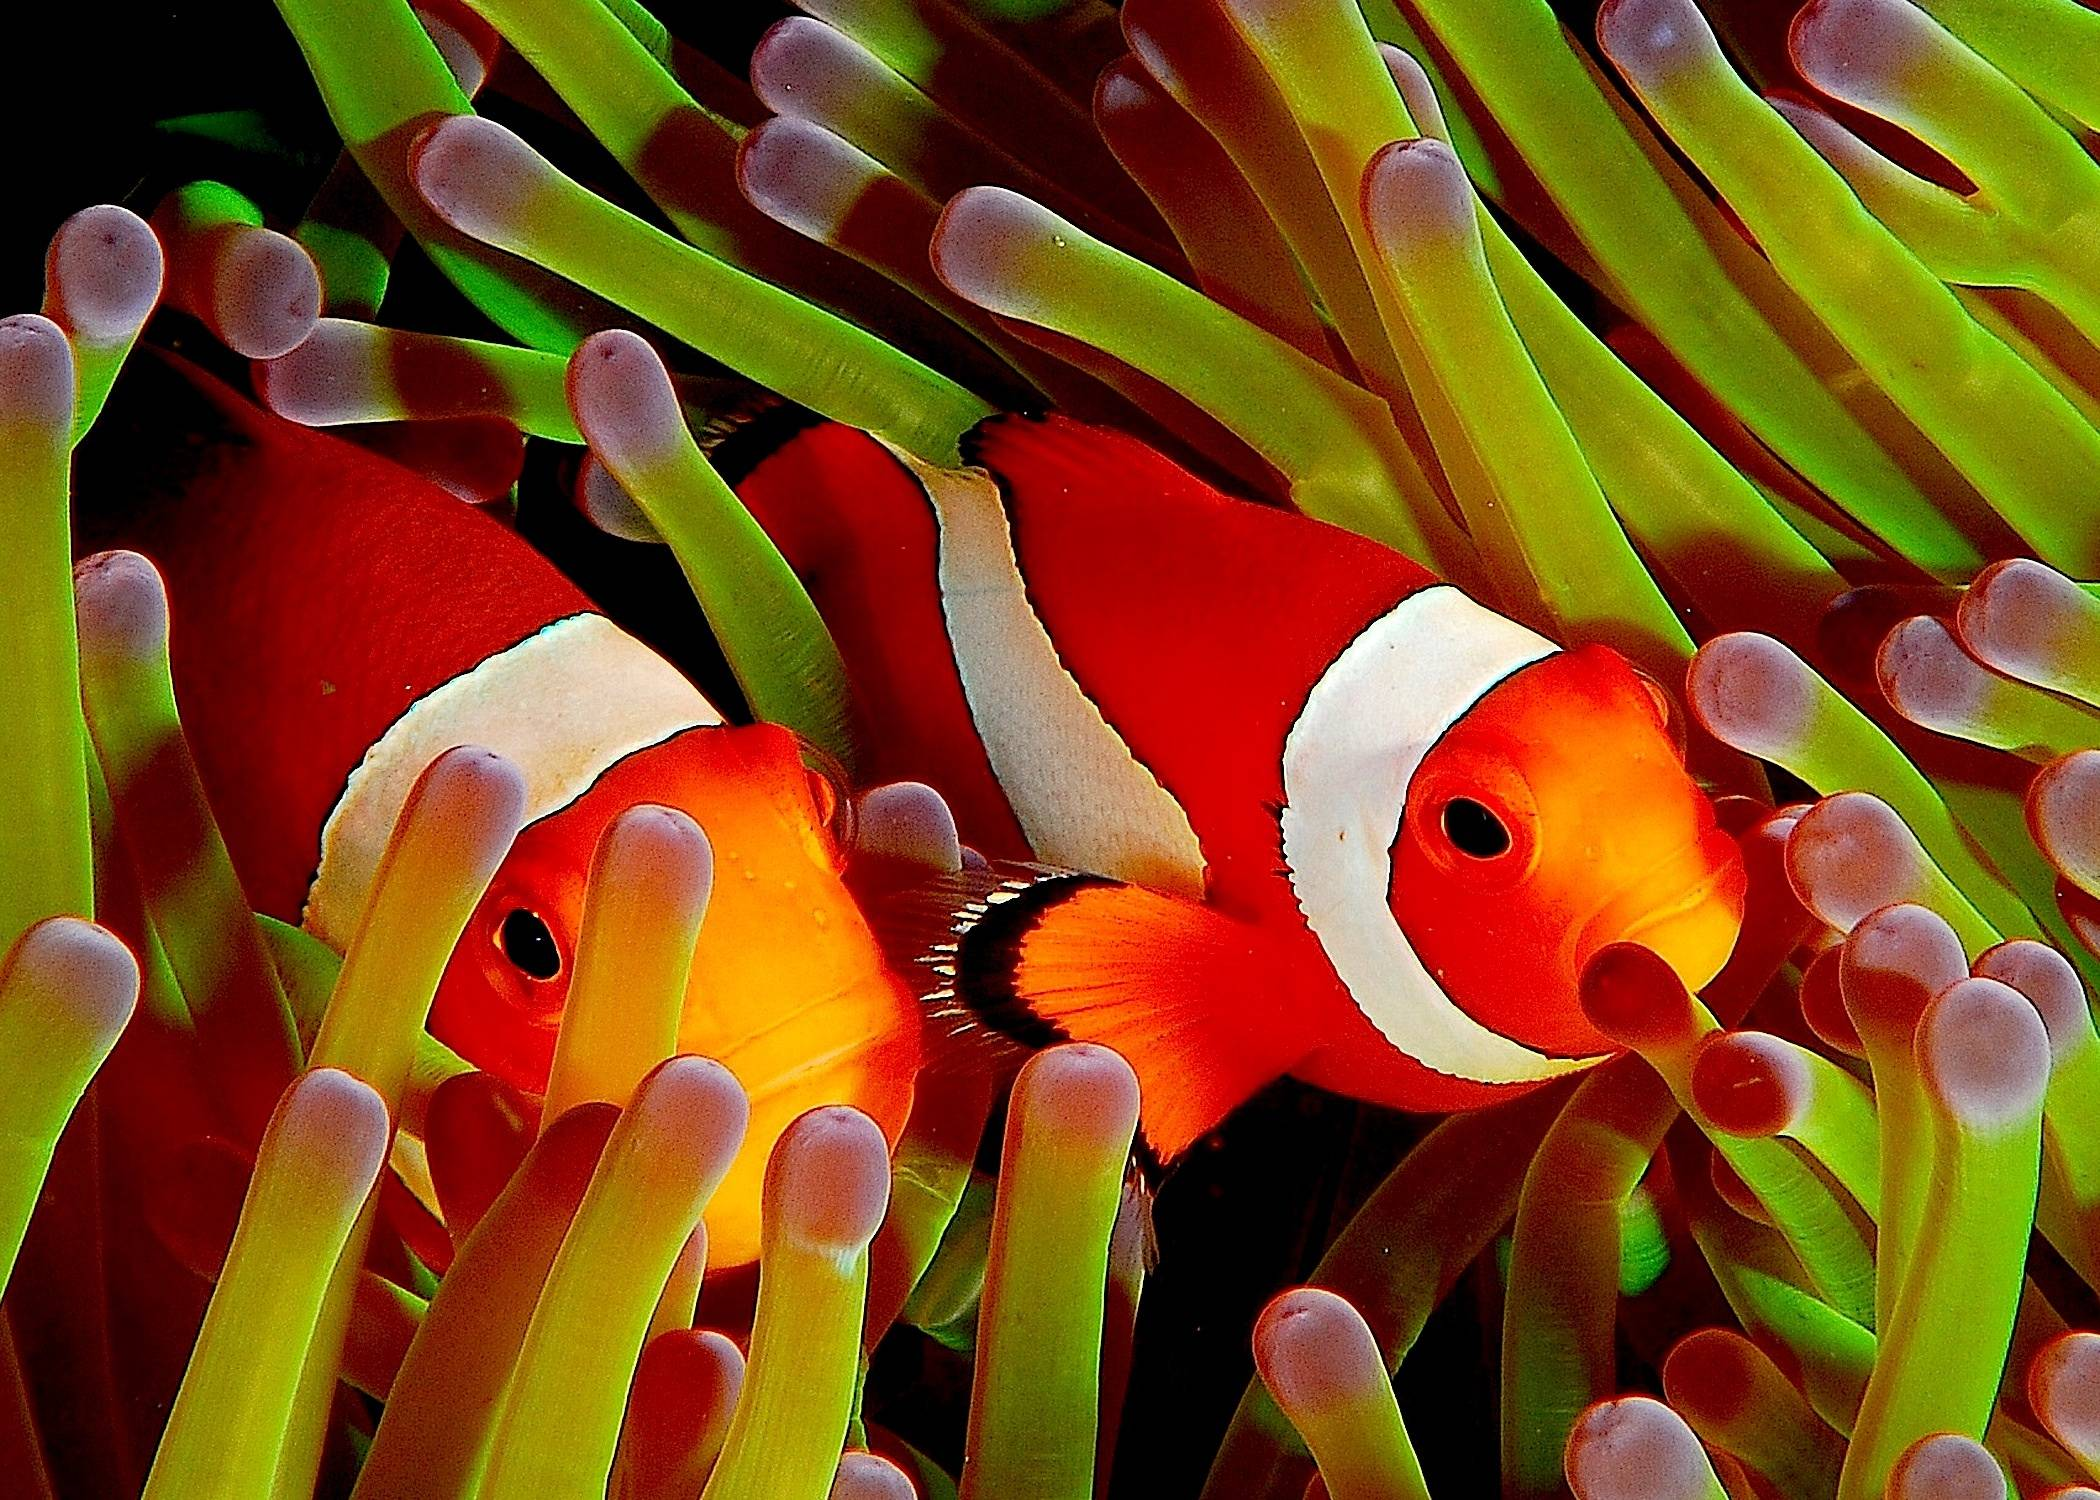 Cute Kittens Wallpapers Animals Wallpapers taken from Clown Fish